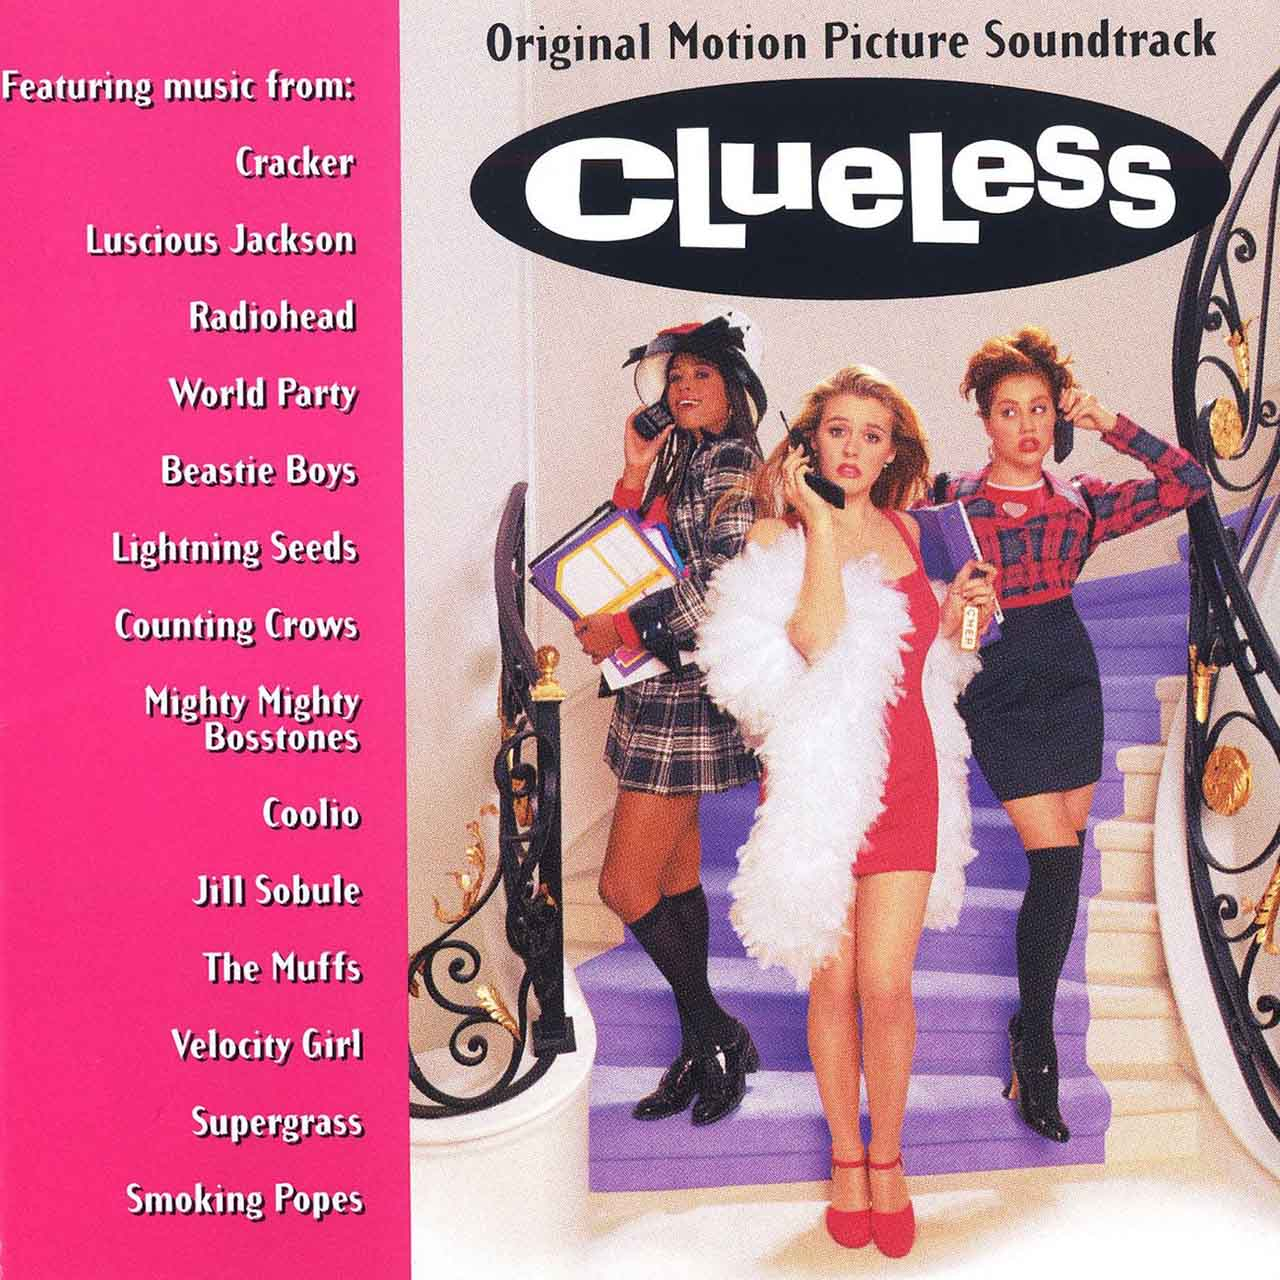 My Top 4 Soundtracks And How They Influence My Mood - When I'm Feeling Nostalgic: The movie clueless debuted in 1995. At that time I was a 13 year old middle schooler who loved getting dressed up and crushing on my crush. The main character Alicia Silverstone (Cher Horowitz) is a privileged high schooler growing up in Beverly Hills. Together with her group of friends she is having the time of her life shopping ad doing what most teenagers do - not having a care in the world. This movie and soundtrack make me feel eternally young, as it zaps me right back to the time of my life when everything was much simpler. The songs Alright by Supergrass, Rollin' With My Homies by Coolio, and Supermodel by Jill Sobule all sum up that time of my life. Whenever I am in a reminiscent mood, I watch Clueless and the music instantly transports me back to my adolescence.